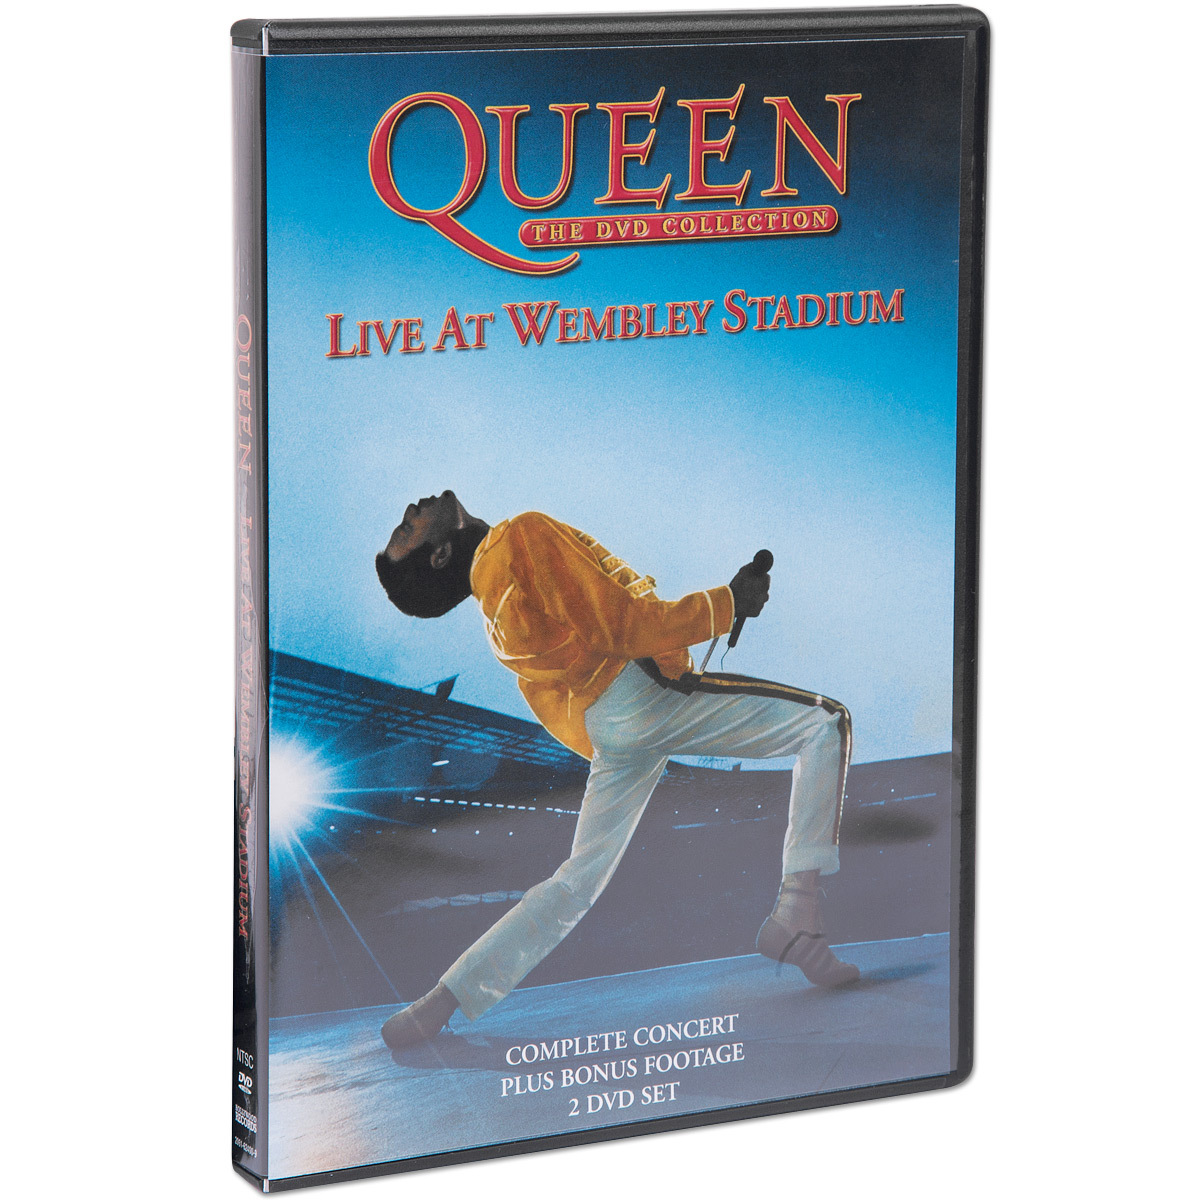 Queen- Live at Wembley Stadium DVD